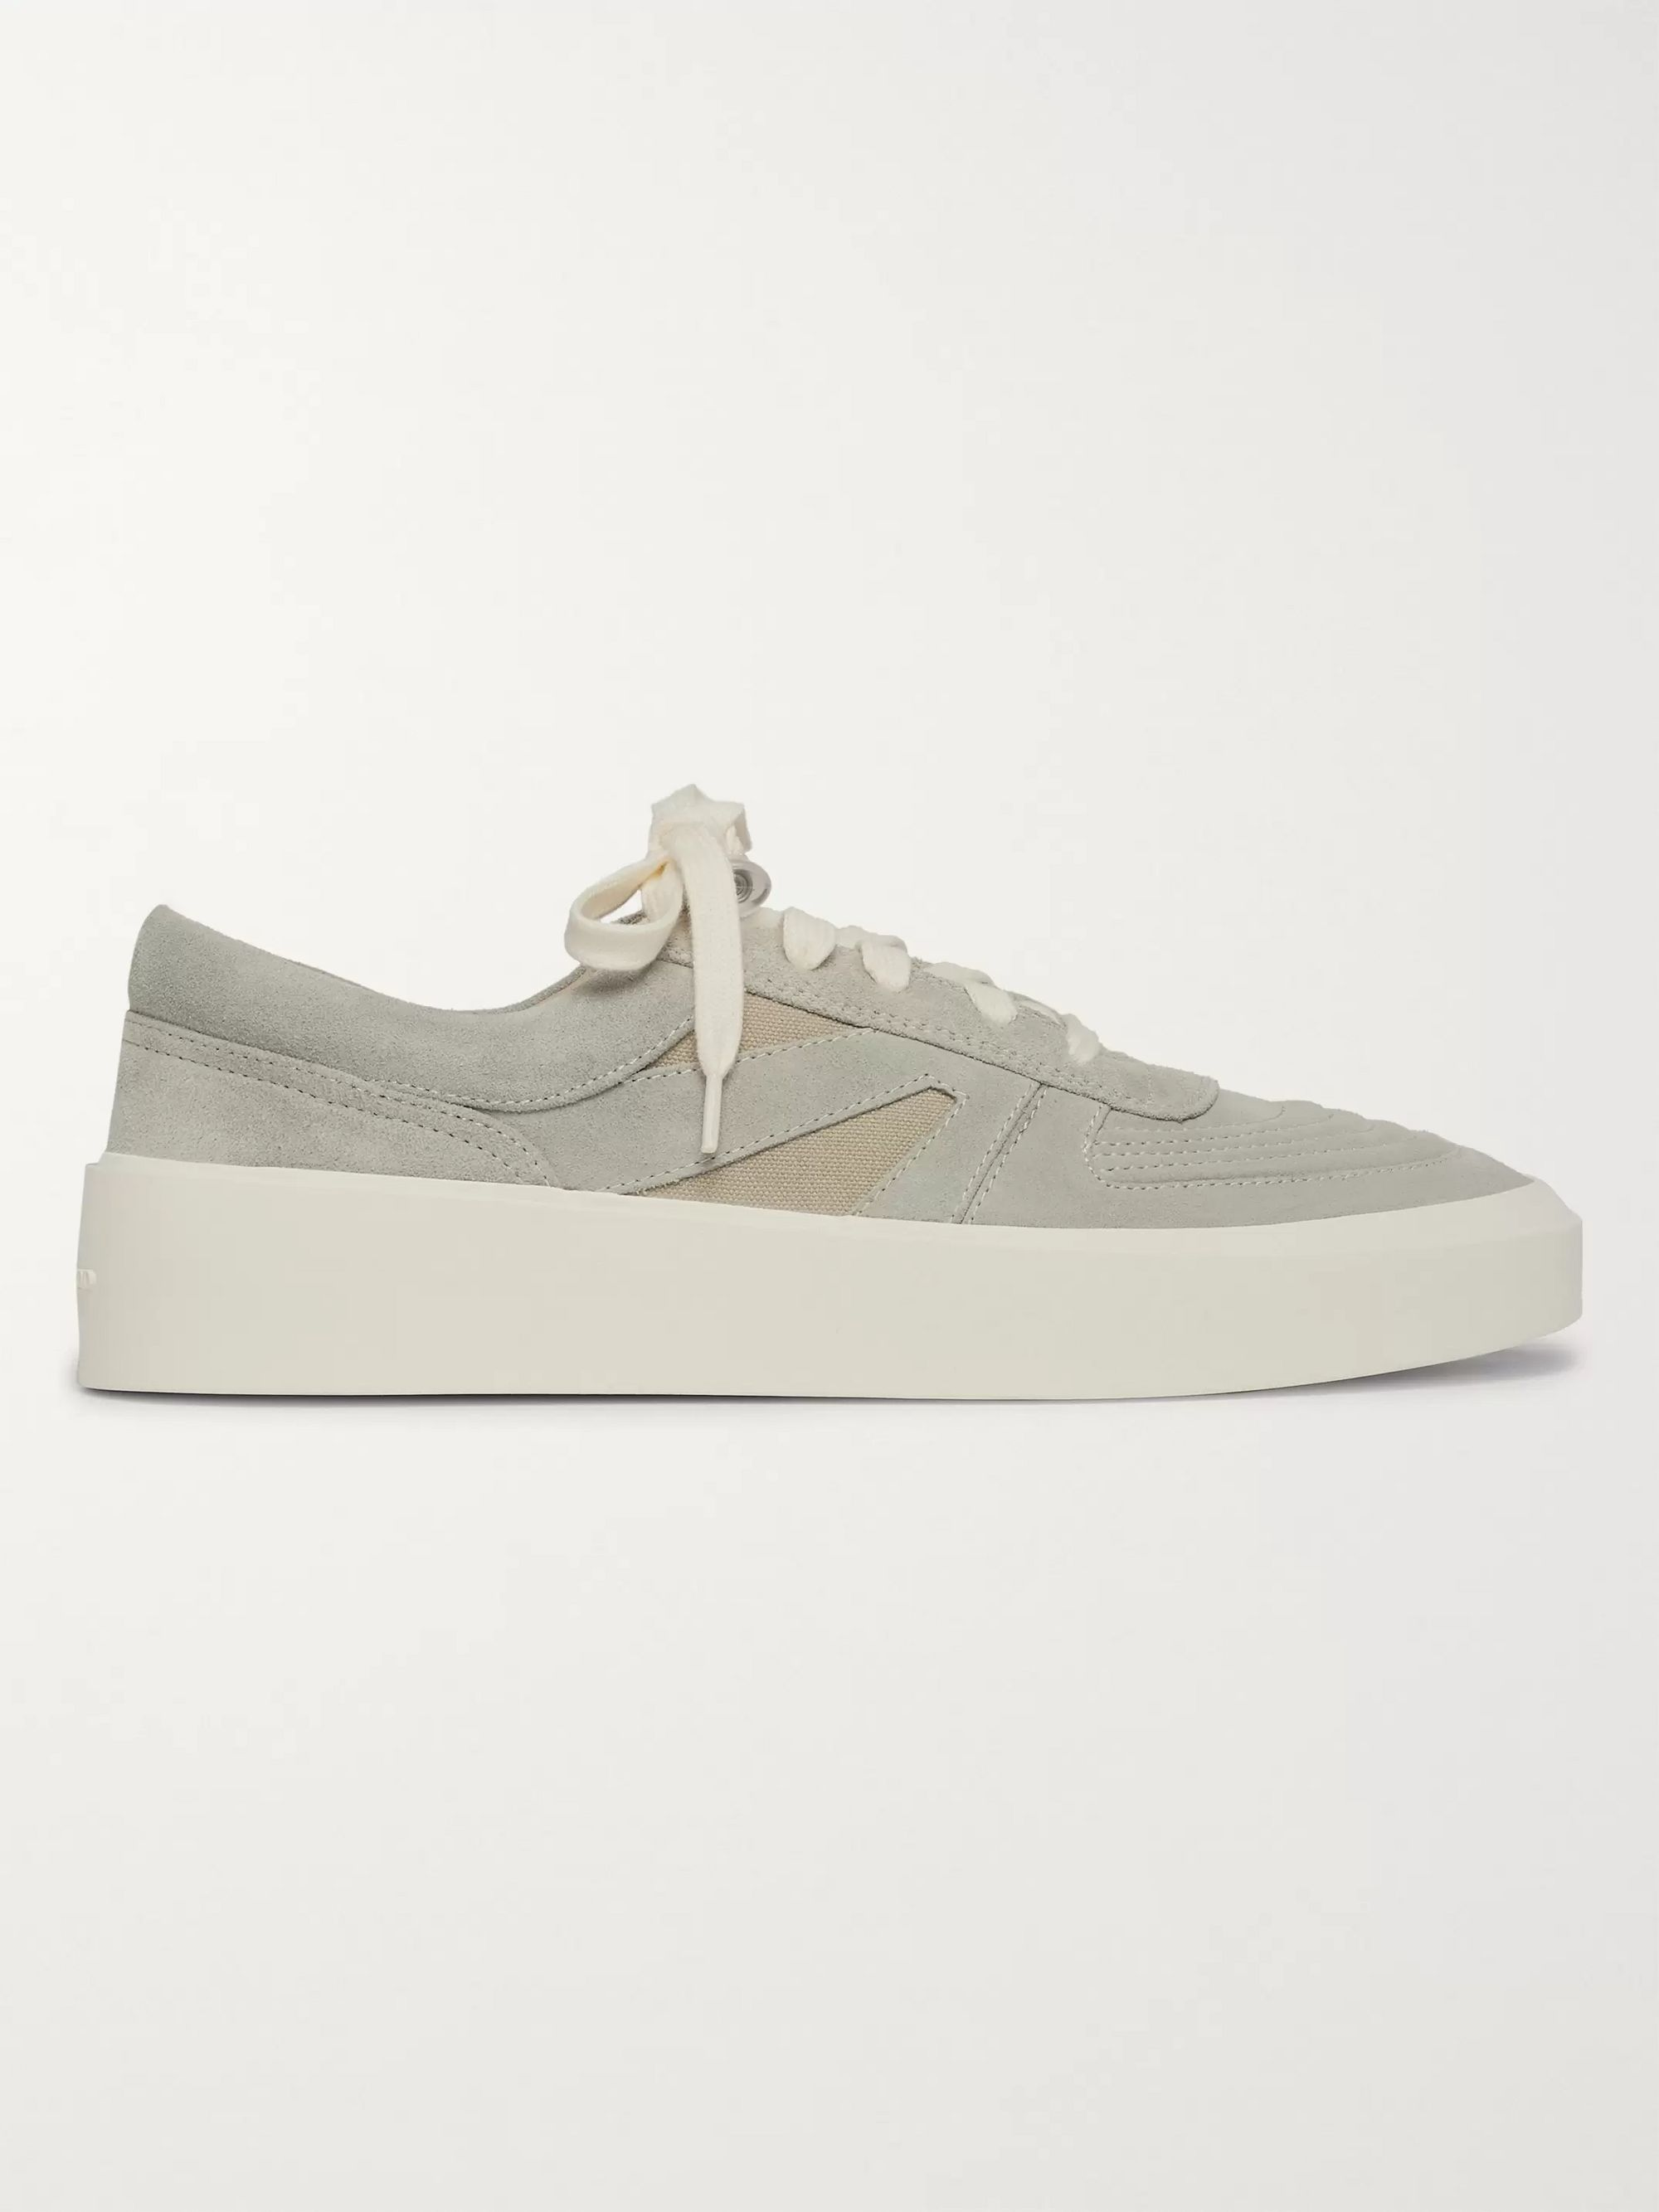 Fear of God Mesh-Trimmed Suede Sneakers